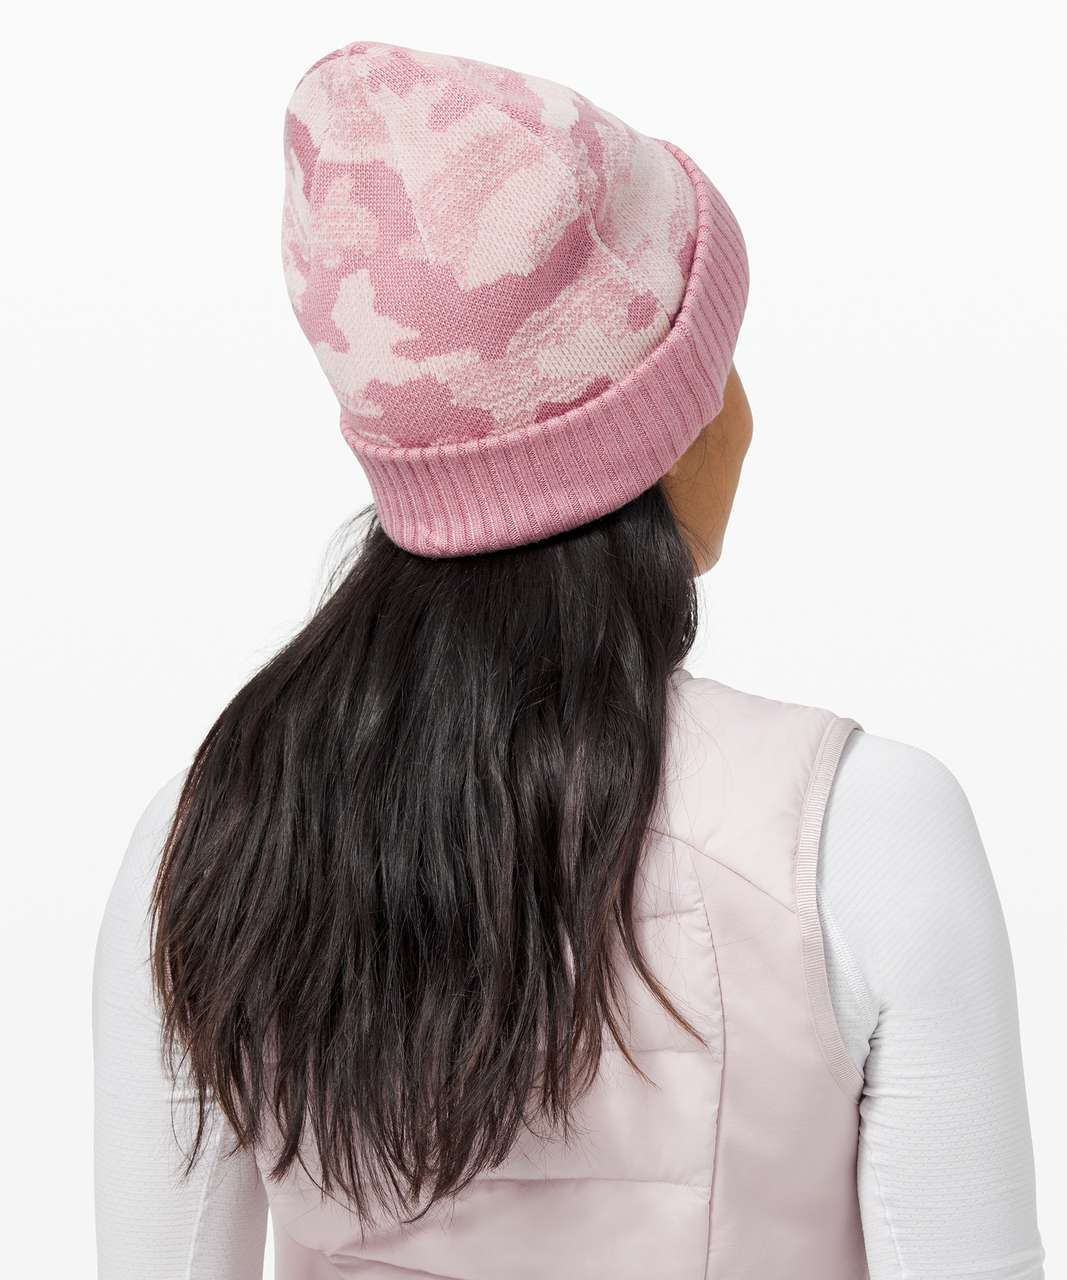 Lululemon Room for Warmth Beanie - Pink Taupe / Porcelain Pink